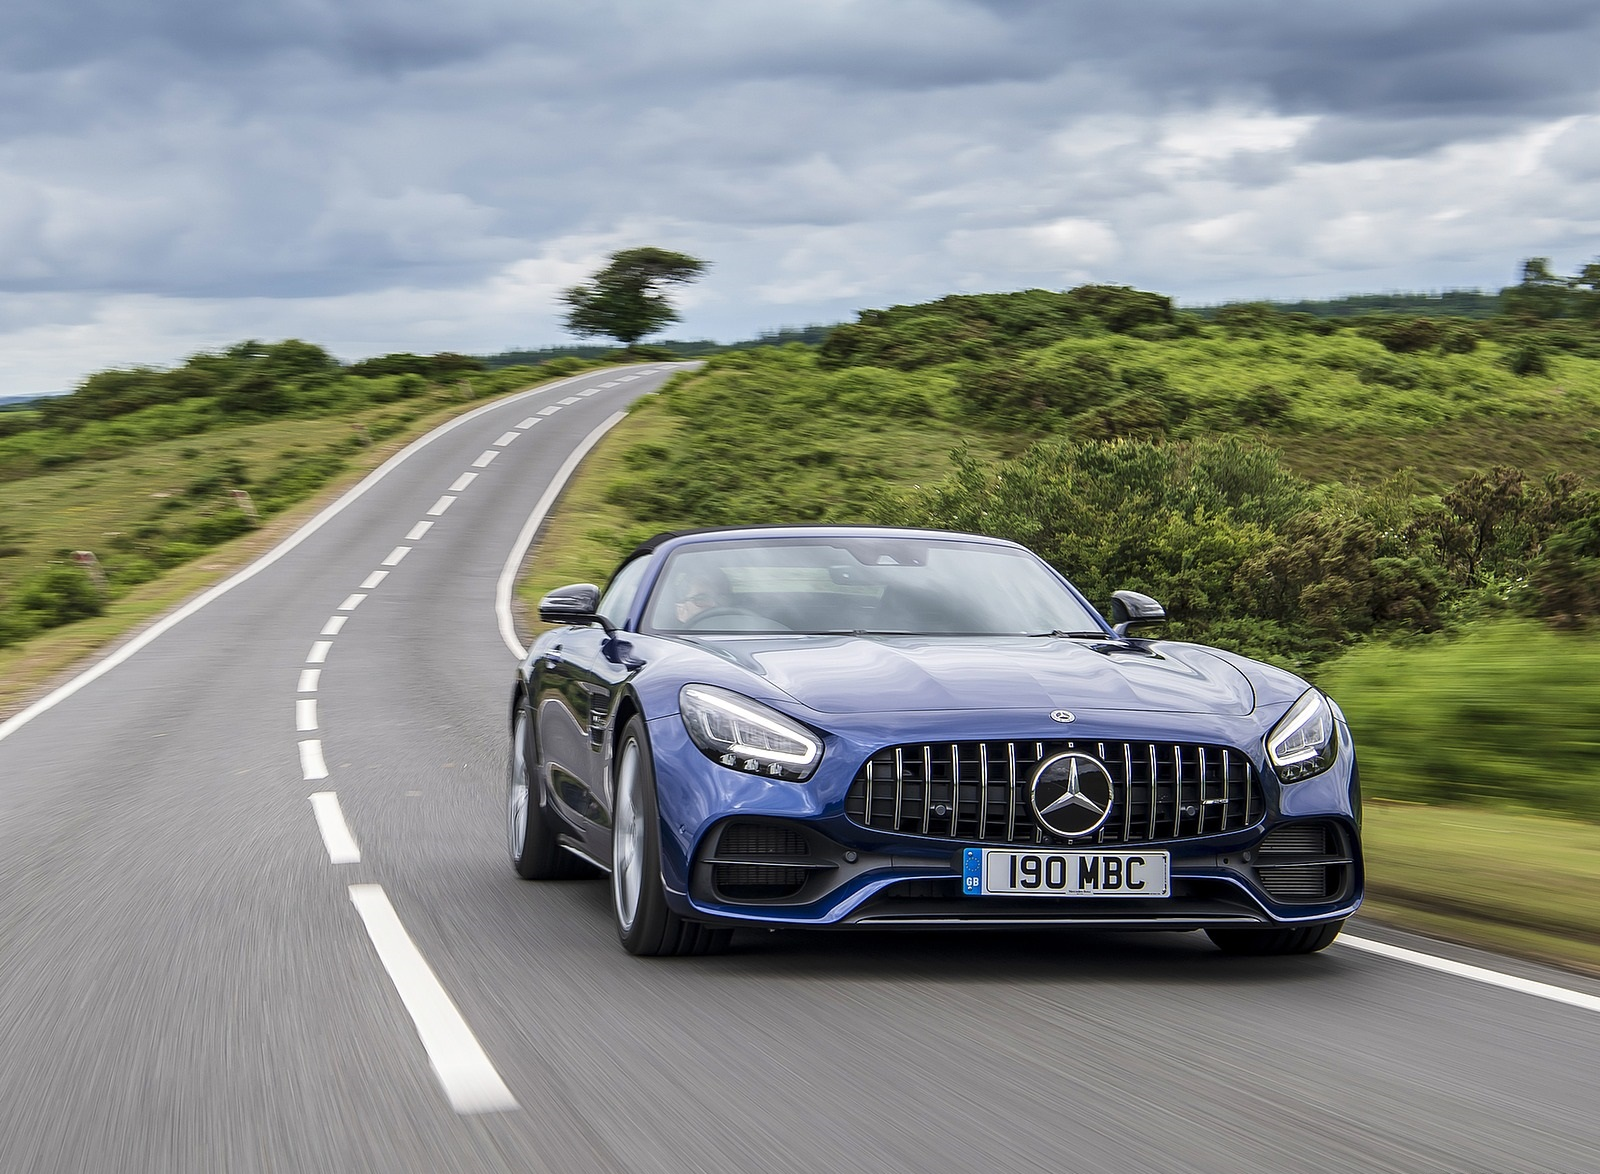 2020 Mercedes-AMG GT S Roadster (UK-Spec) Front Three-Quarter Wallpapers (5)